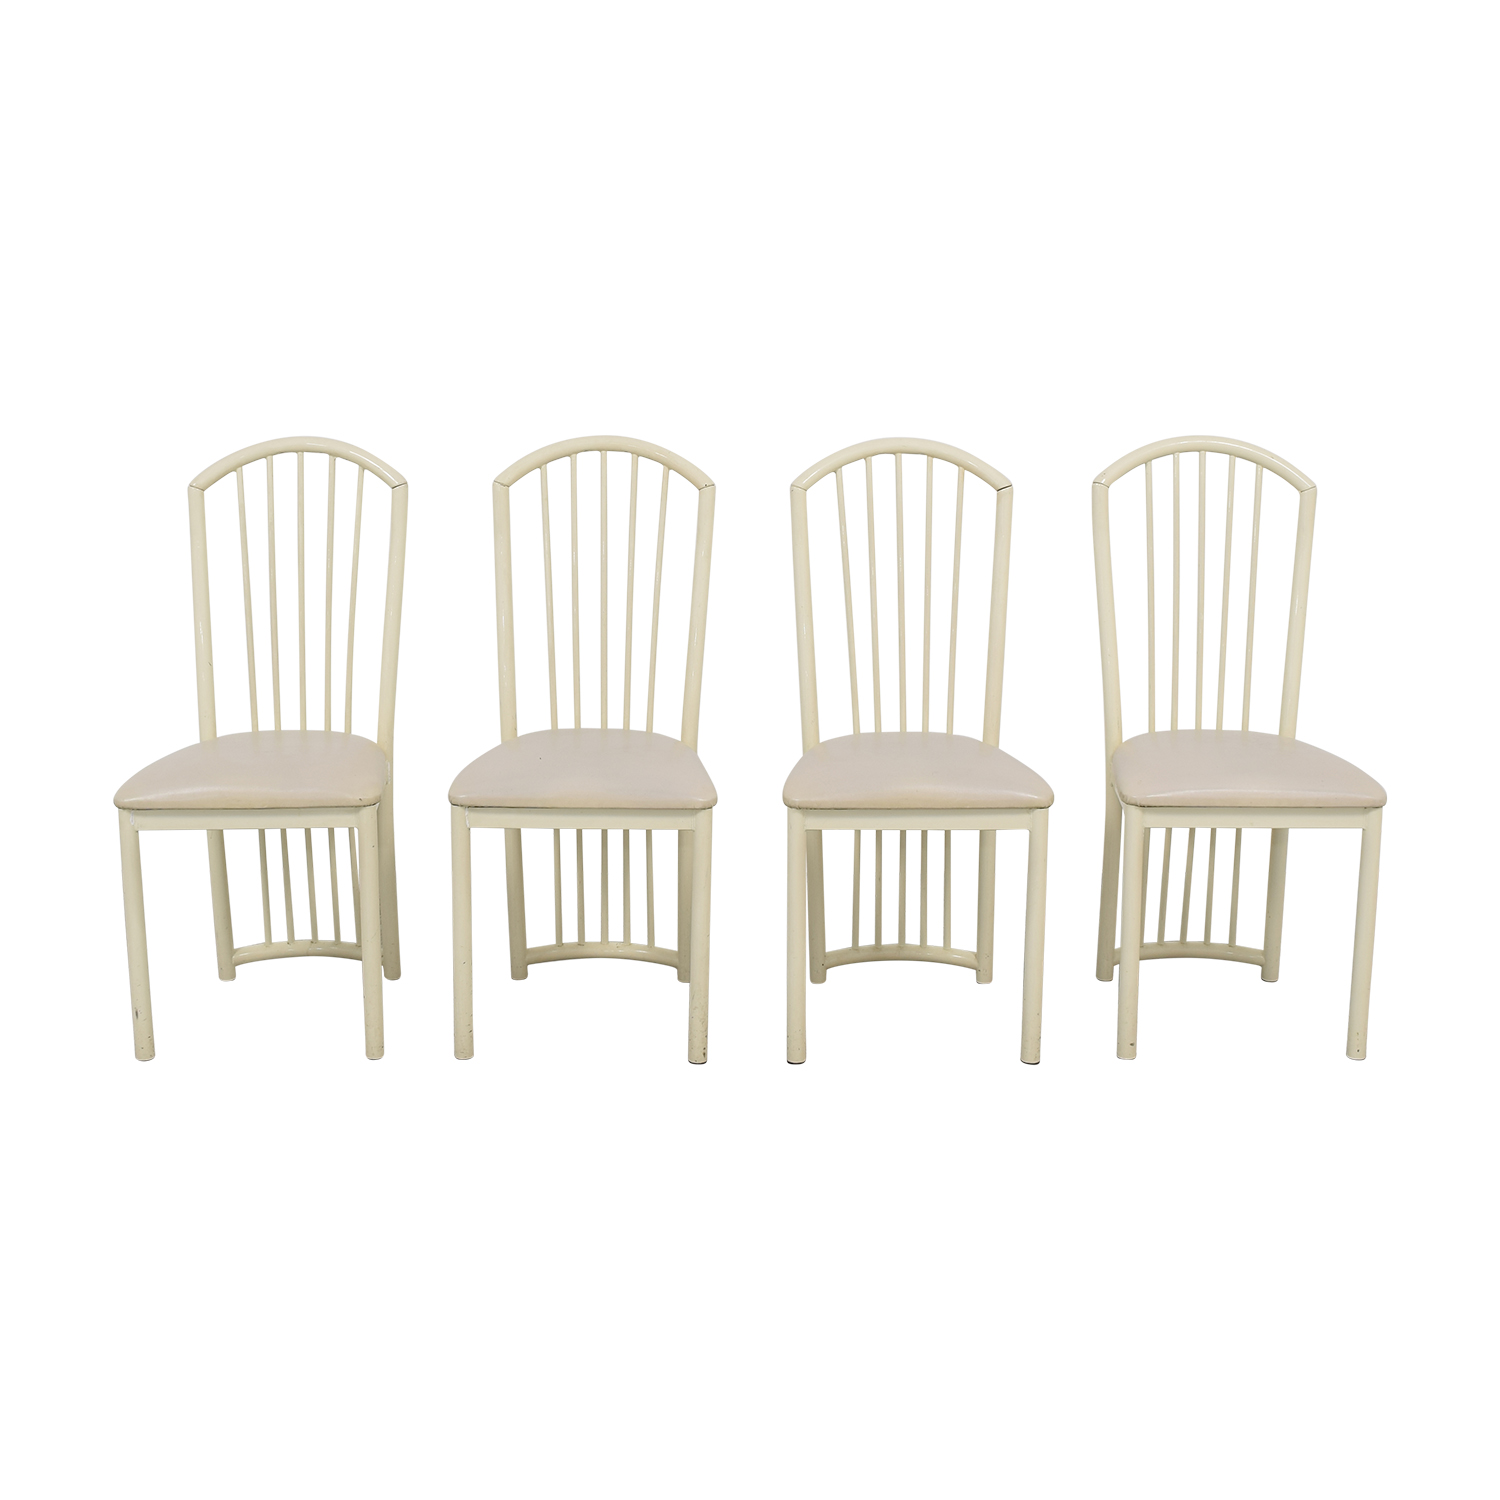 Spindle Back Dining Chairs on sale